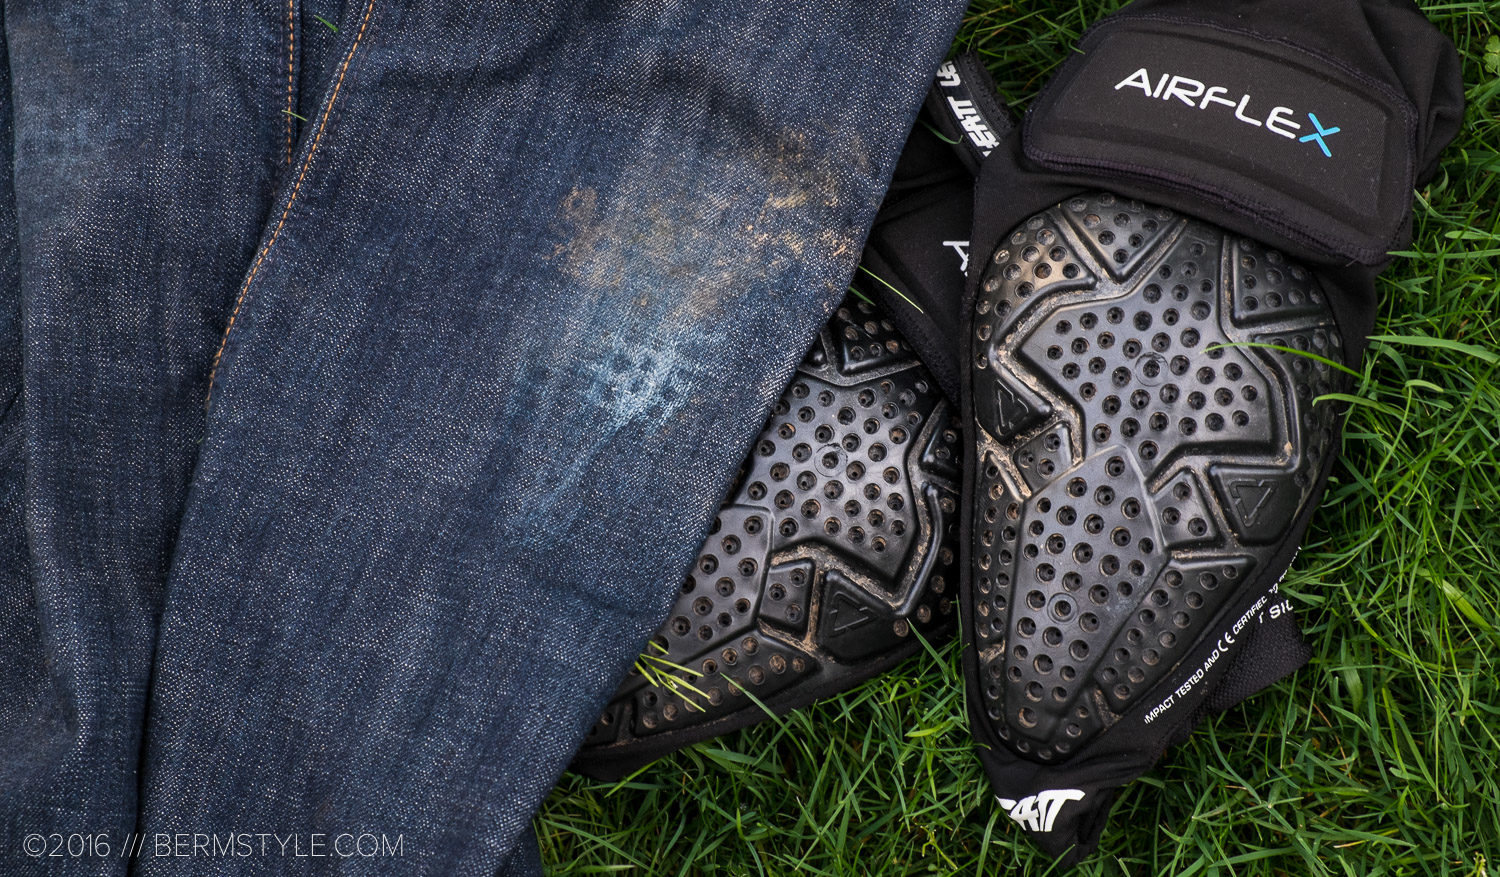 Review: Leatt Airflex Pro Knee Guard and Airflex Glove